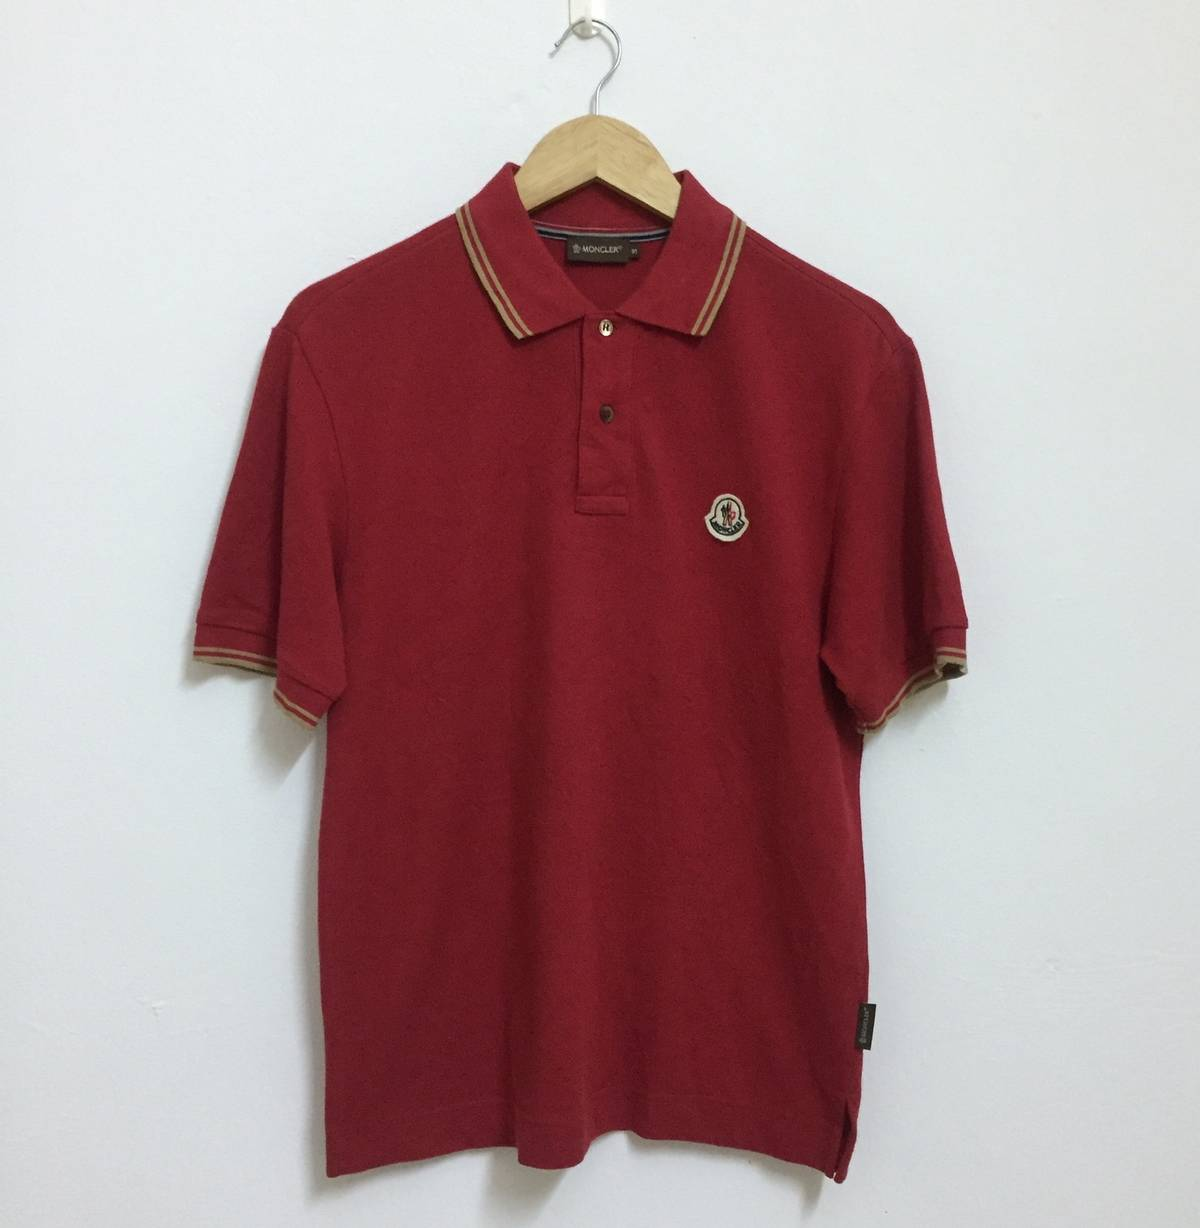 Moncler Moncler Polo Shirt Ringer Size S Made In Macau Shirt Size S